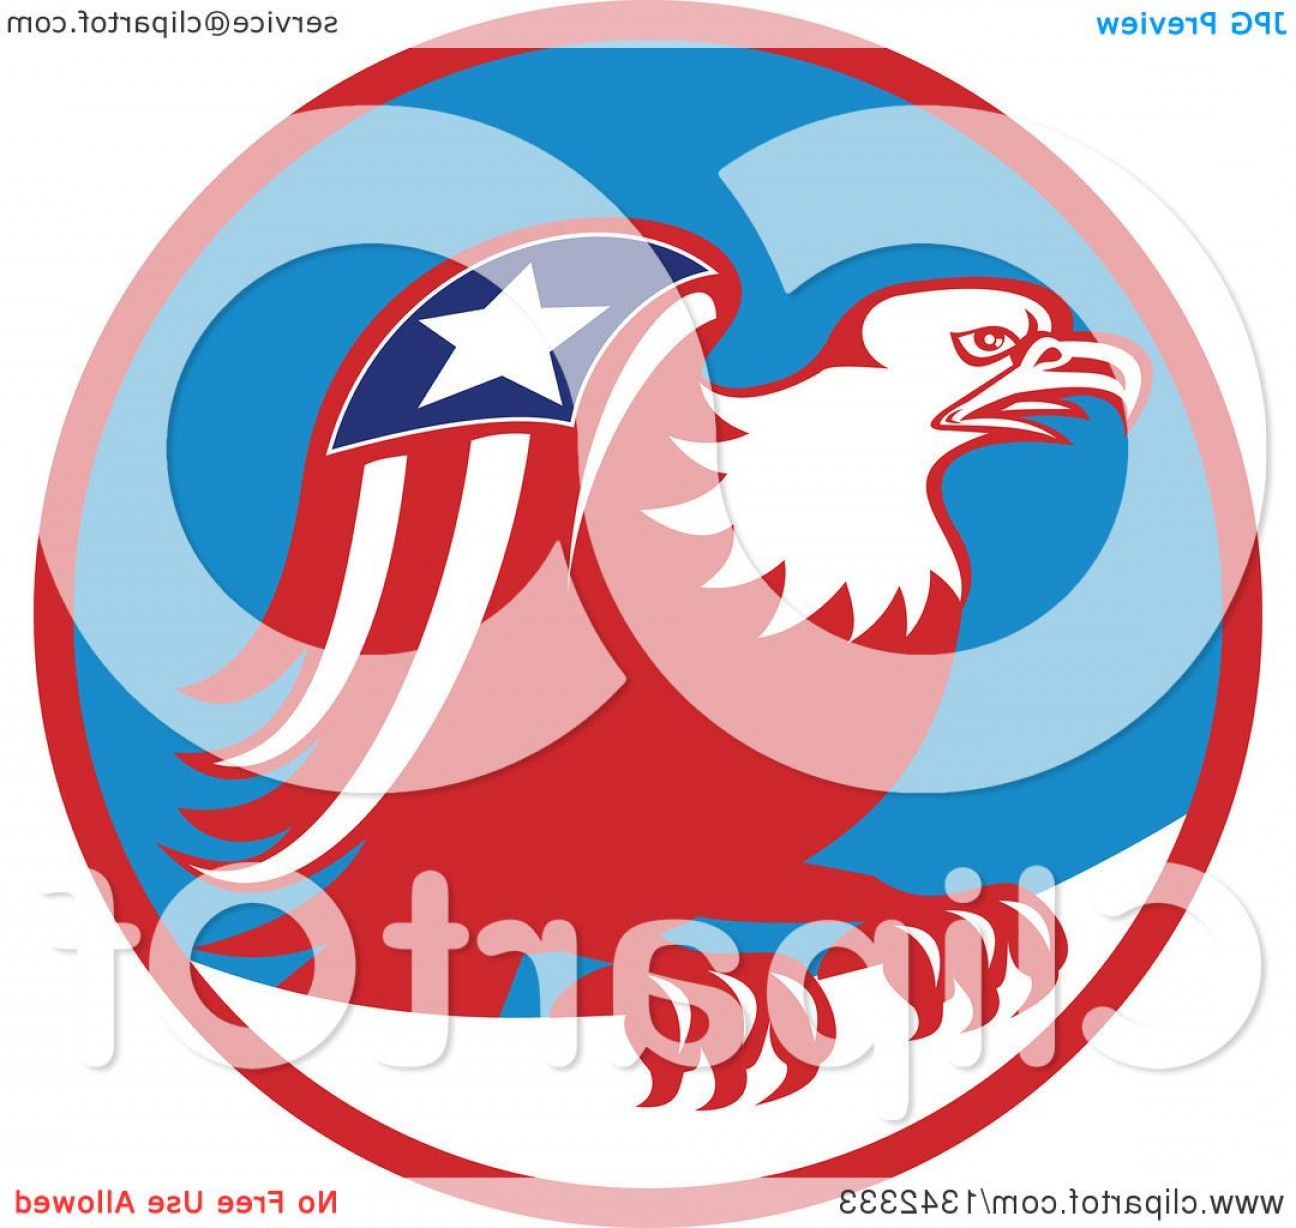 Patriotic Bald Eagle Vector: Retro Cartoon American Bald Eagle With A Patriotic Wing In A Red Blue And White Circle